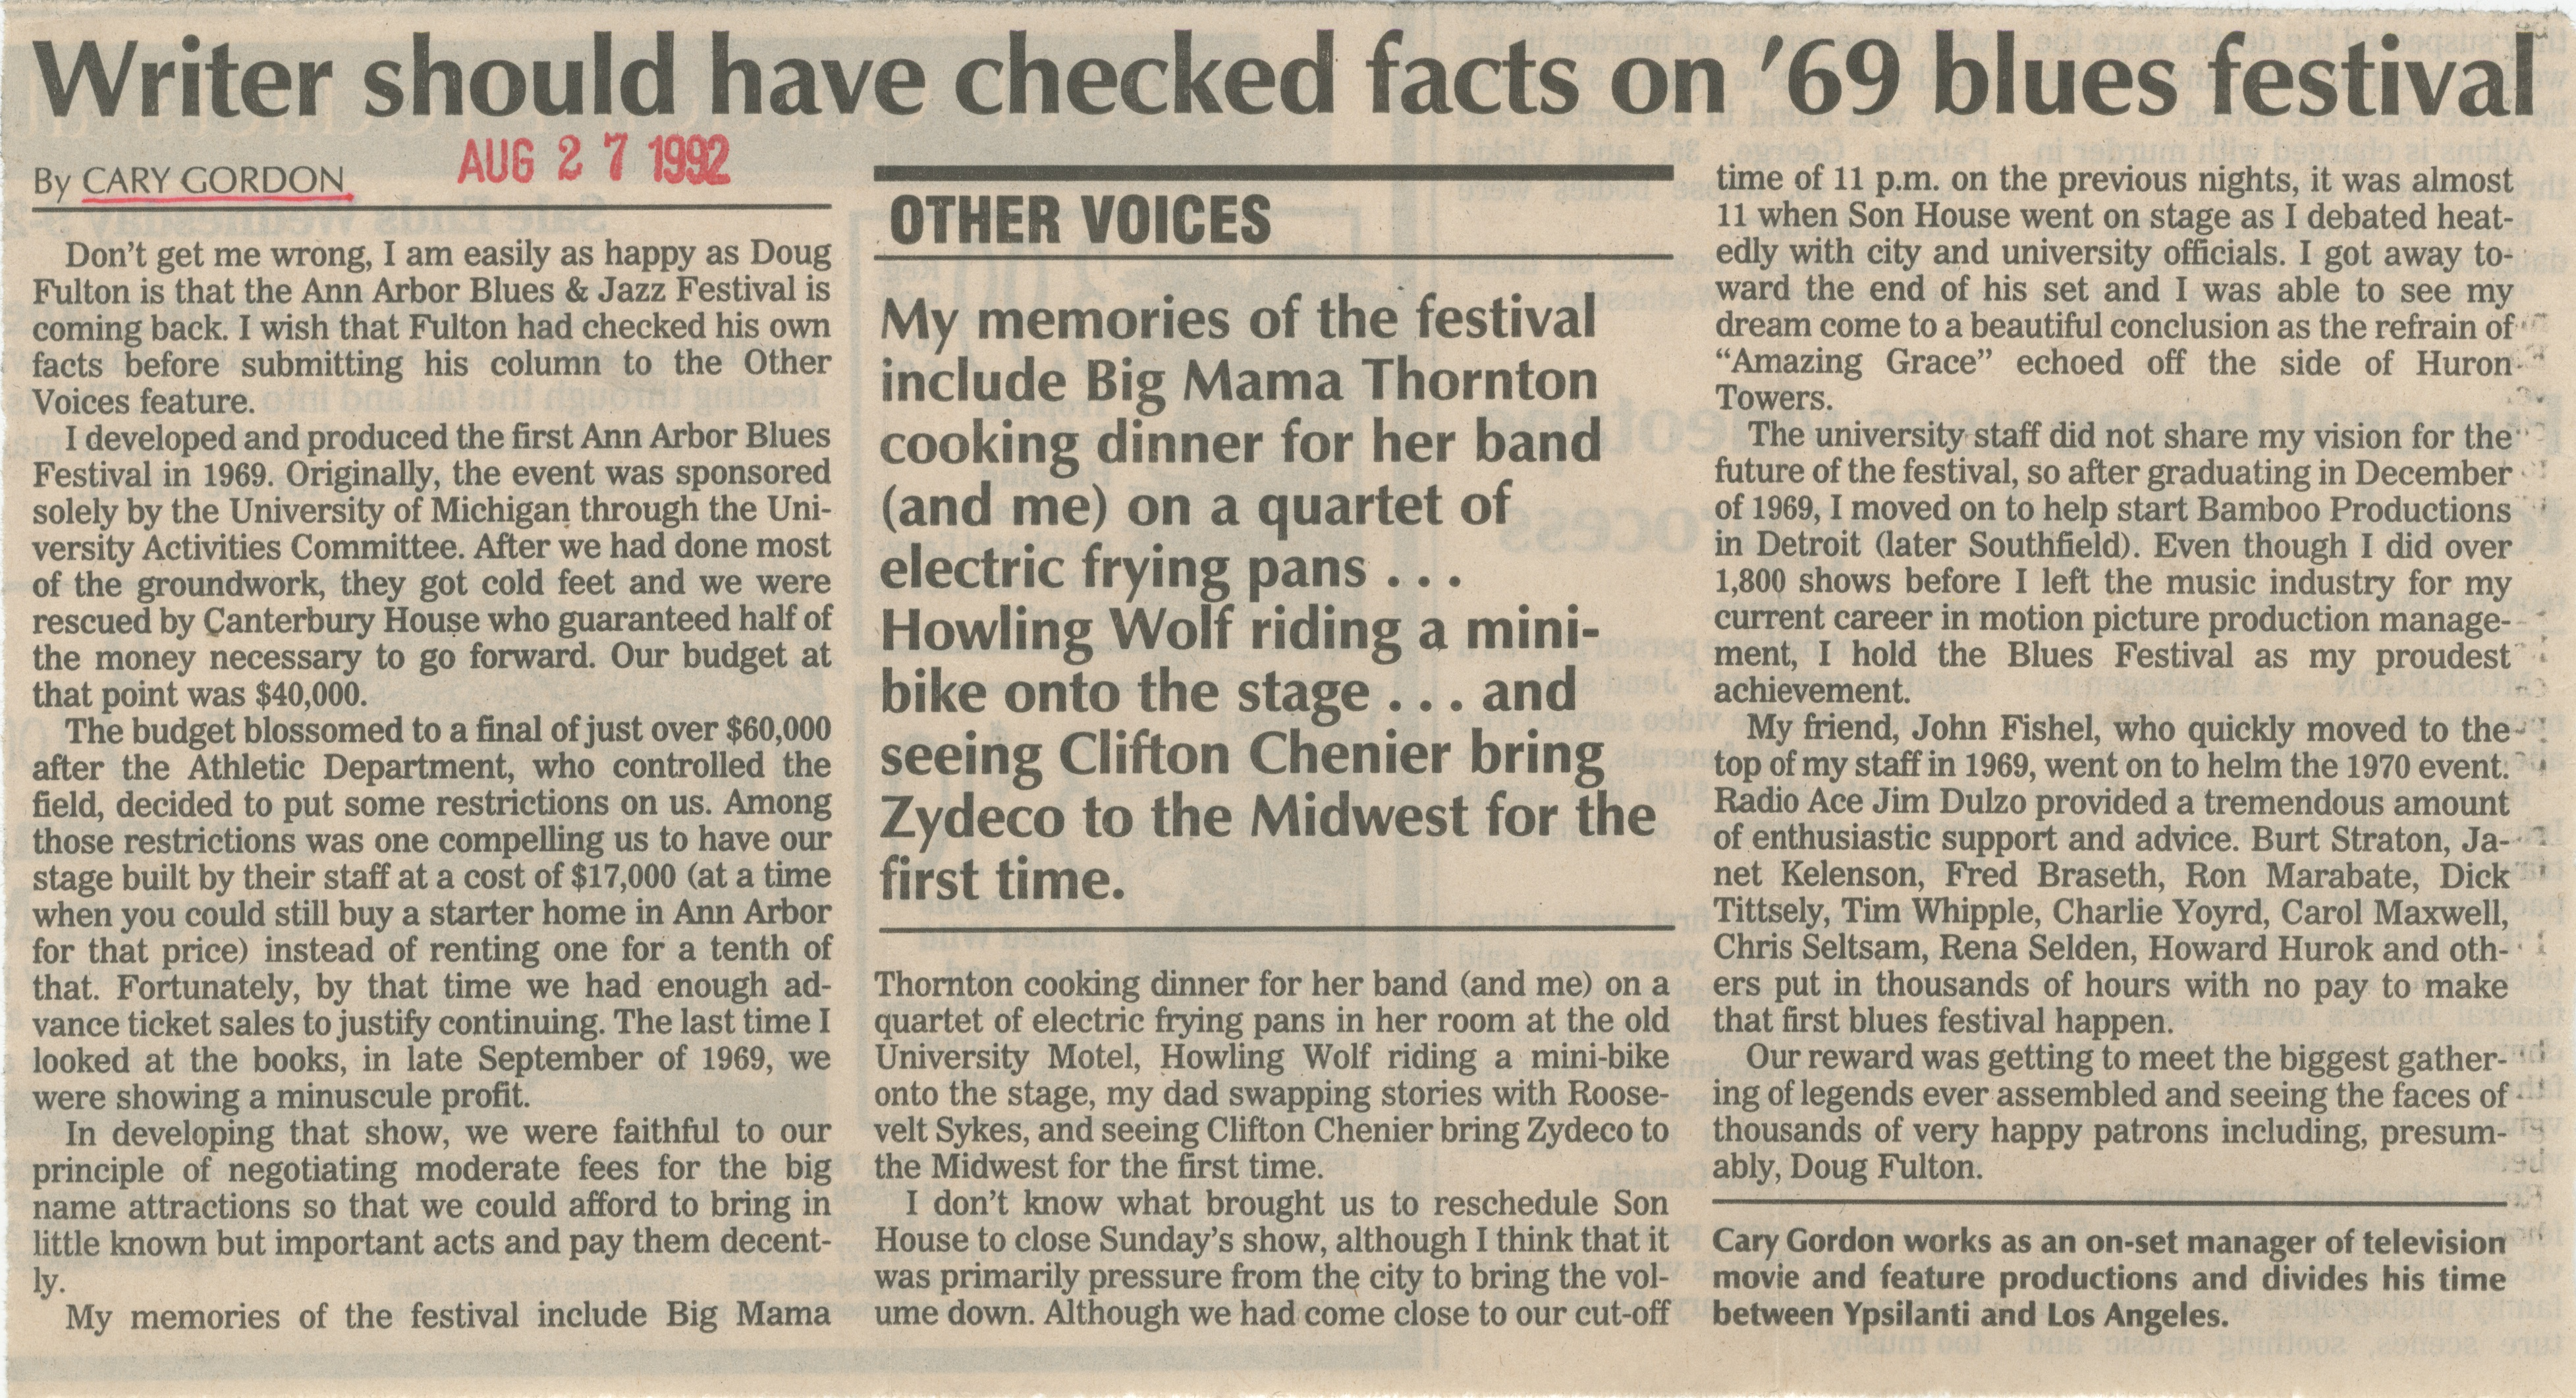 Writer should have checked facts on '69 blues festival image